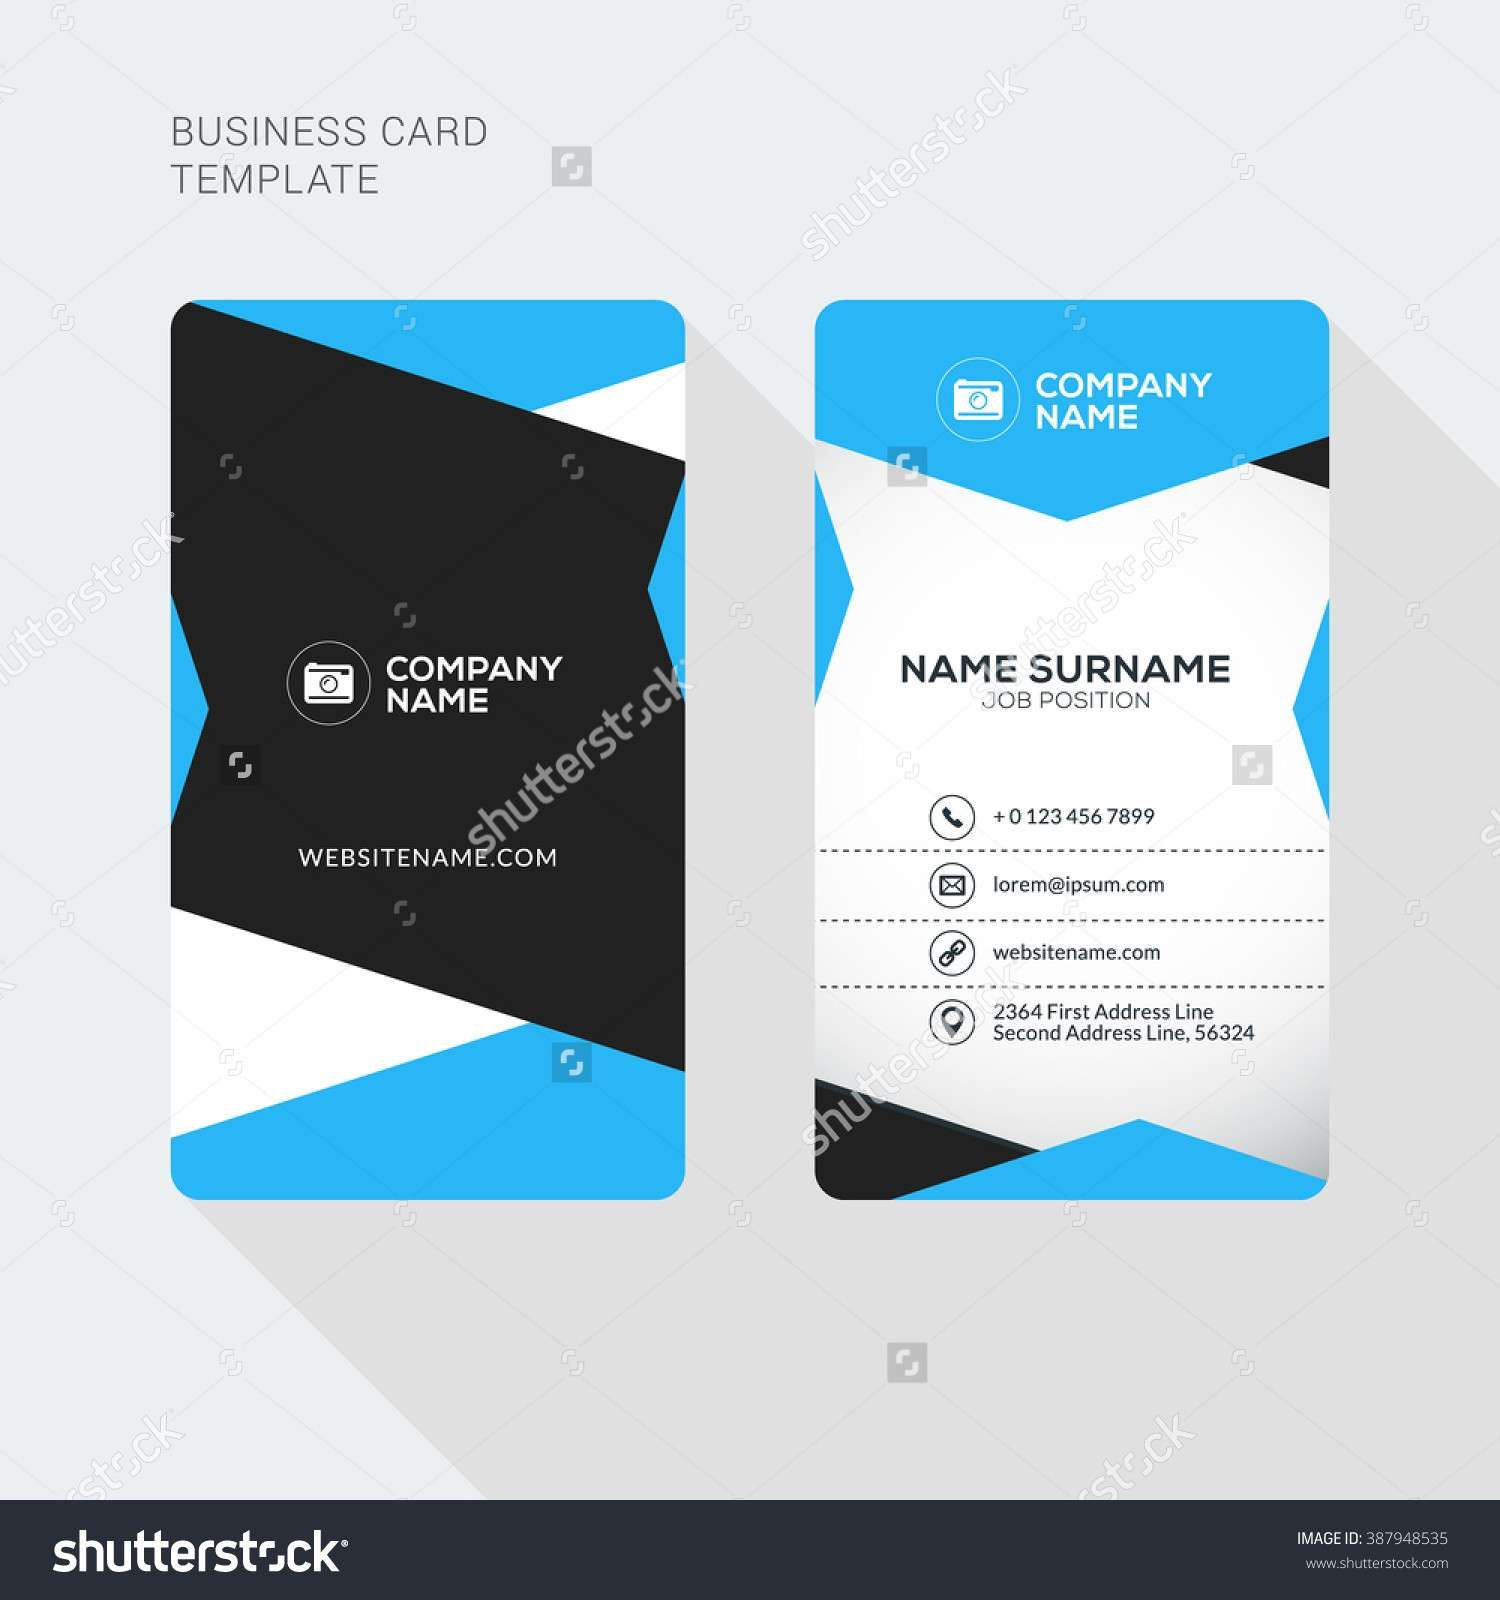 2 Sided Business Card Template Word Fresh 2 Sided Business For 2 Sided Business Card Tem Business Card Template Word Business Card Template Make Business Cards